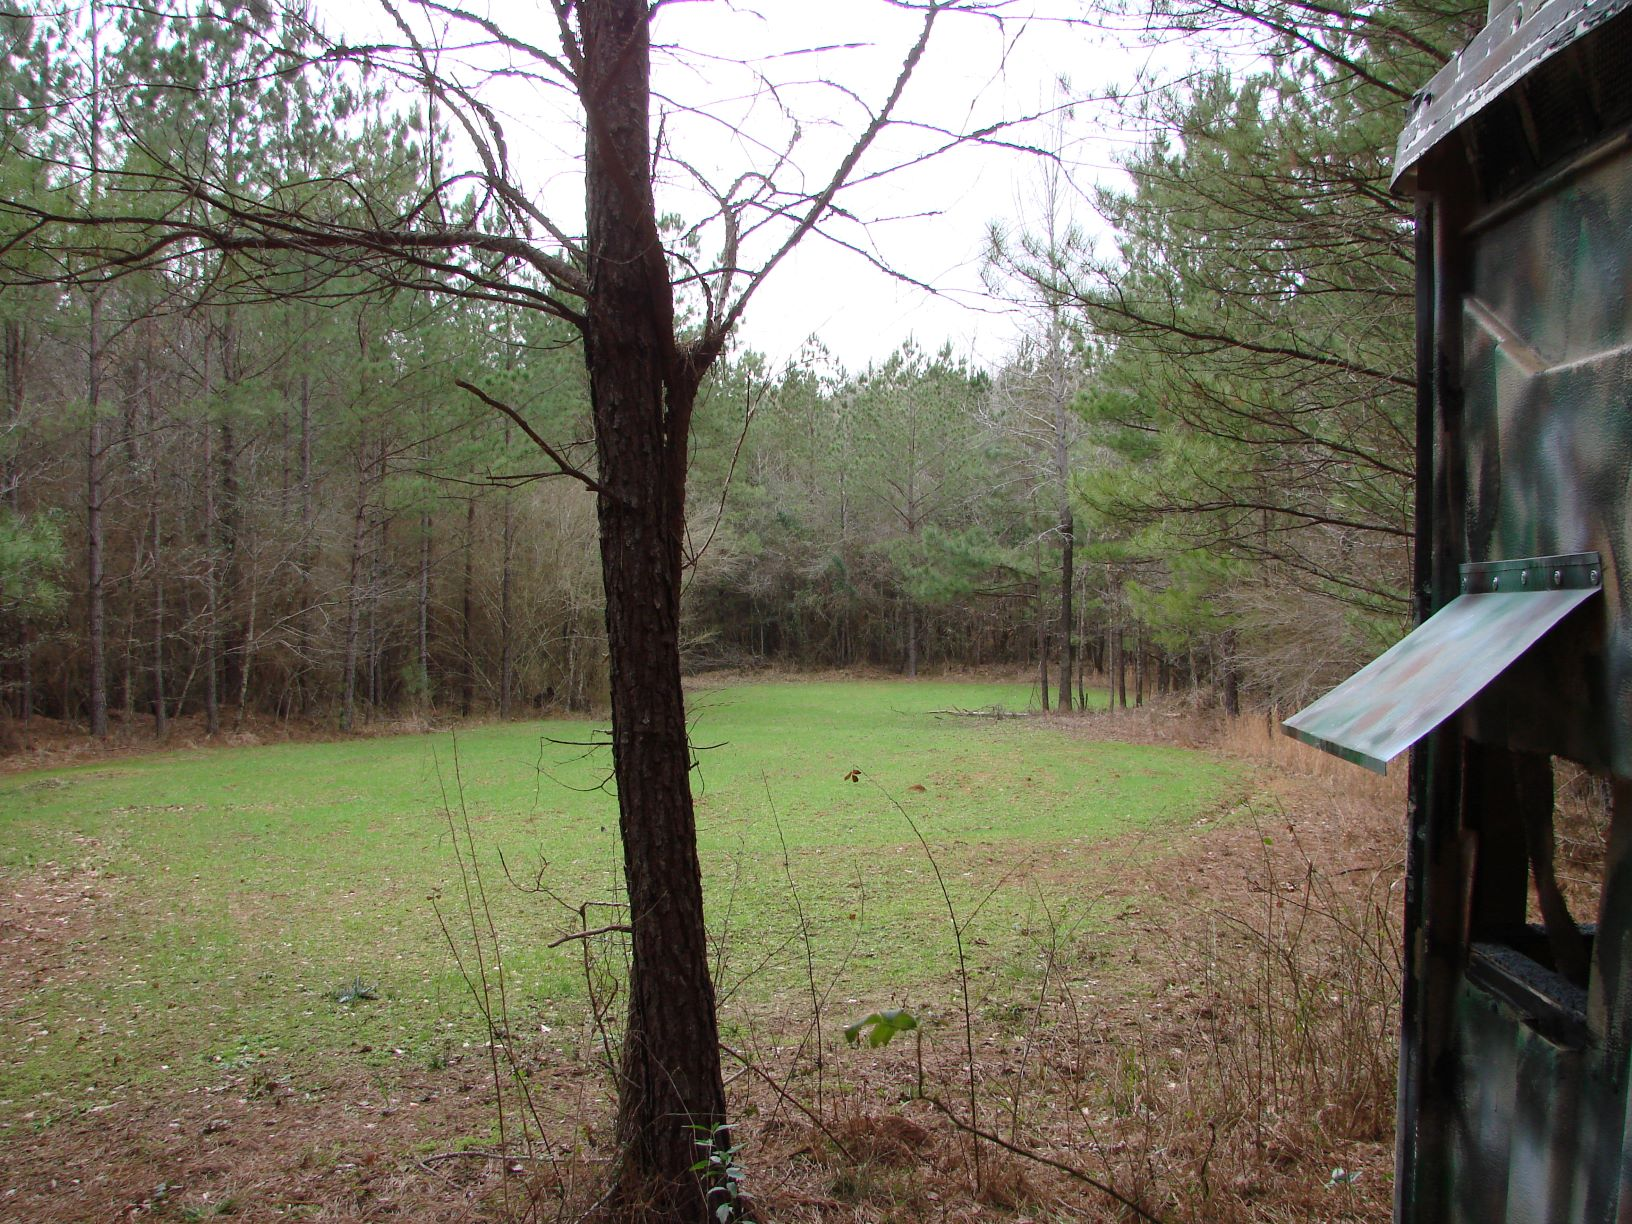 Another of the wildlife food plots on the property